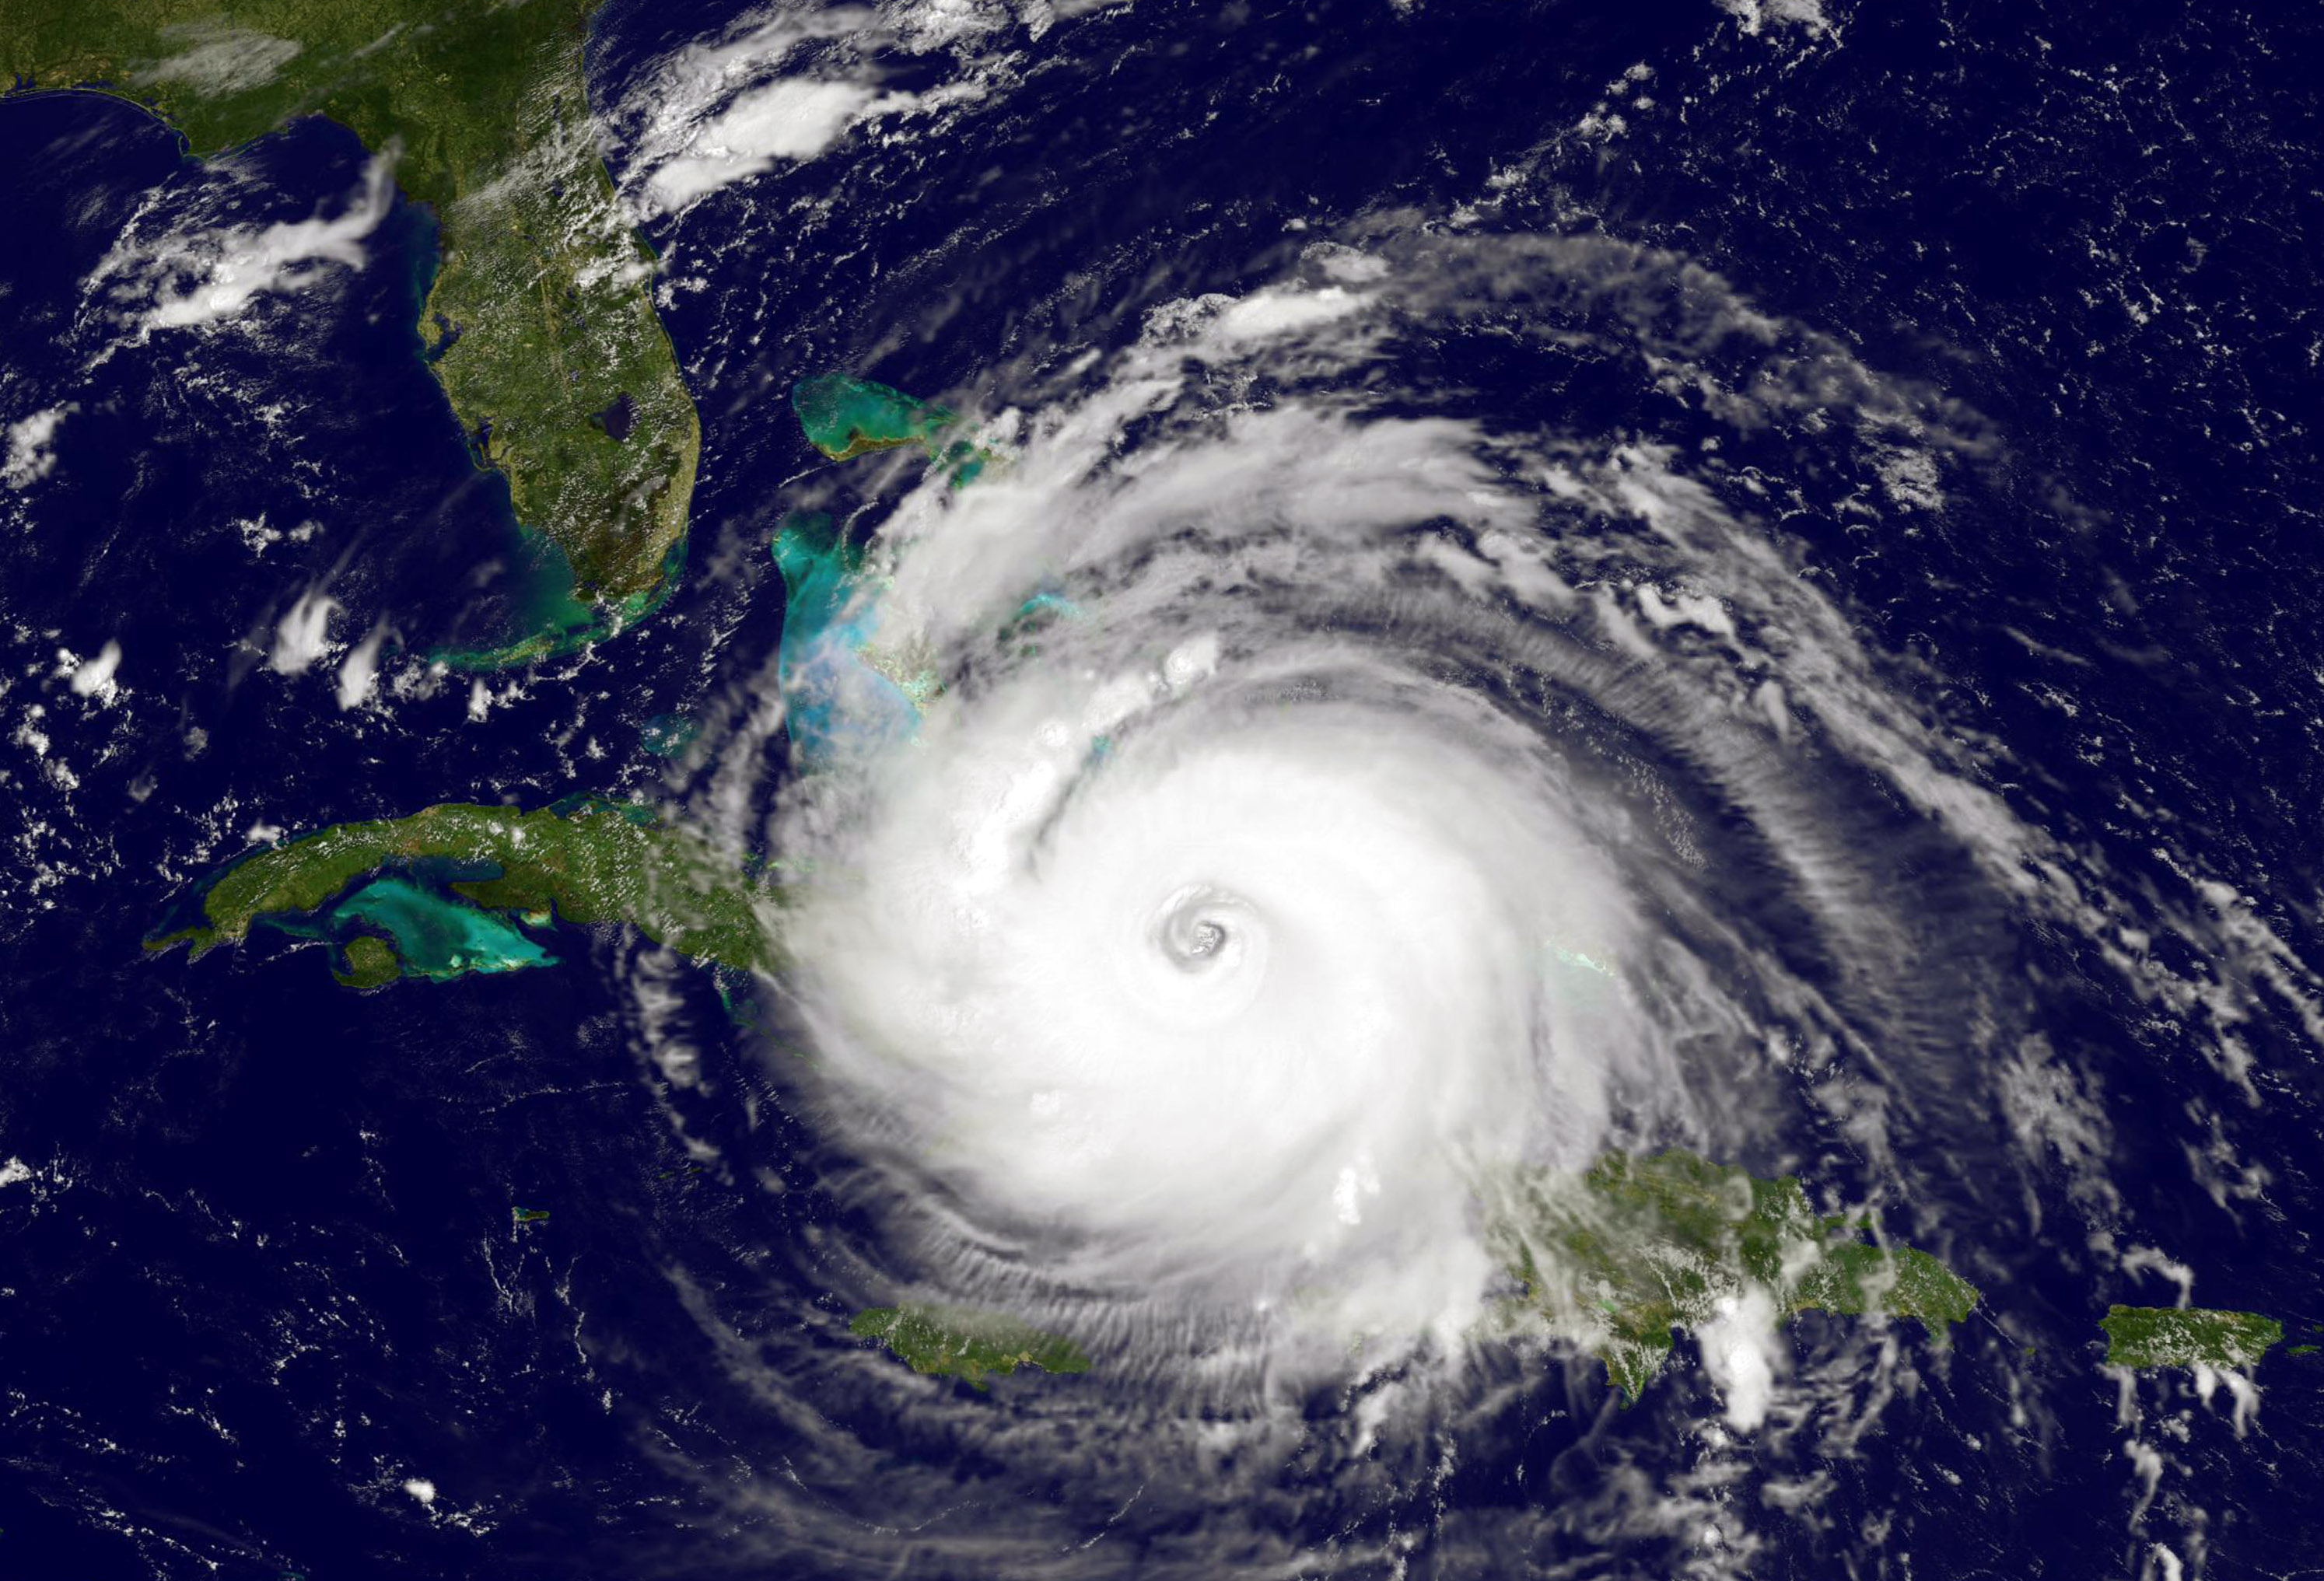 Satellite shows Hurricane Irma as it moves towards the Florida Coast as a category 4 storm in the Caribbean Sea taken at 14:45 UTC on Sept. 08, 2017. (NOAA GOES Project via Getty Images)